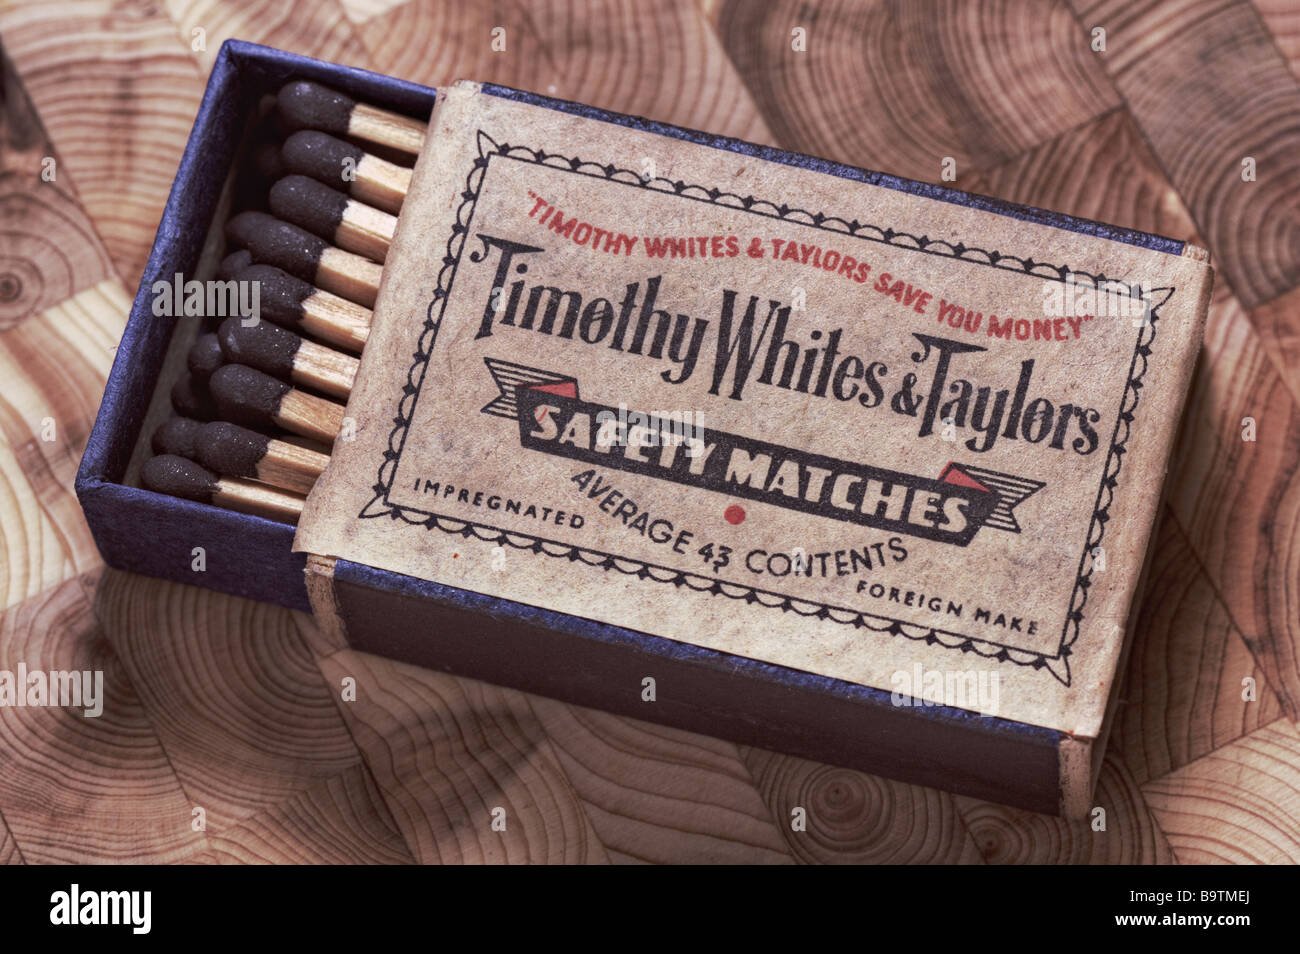 Vintage box of safety matches from 1960's - Stock Image